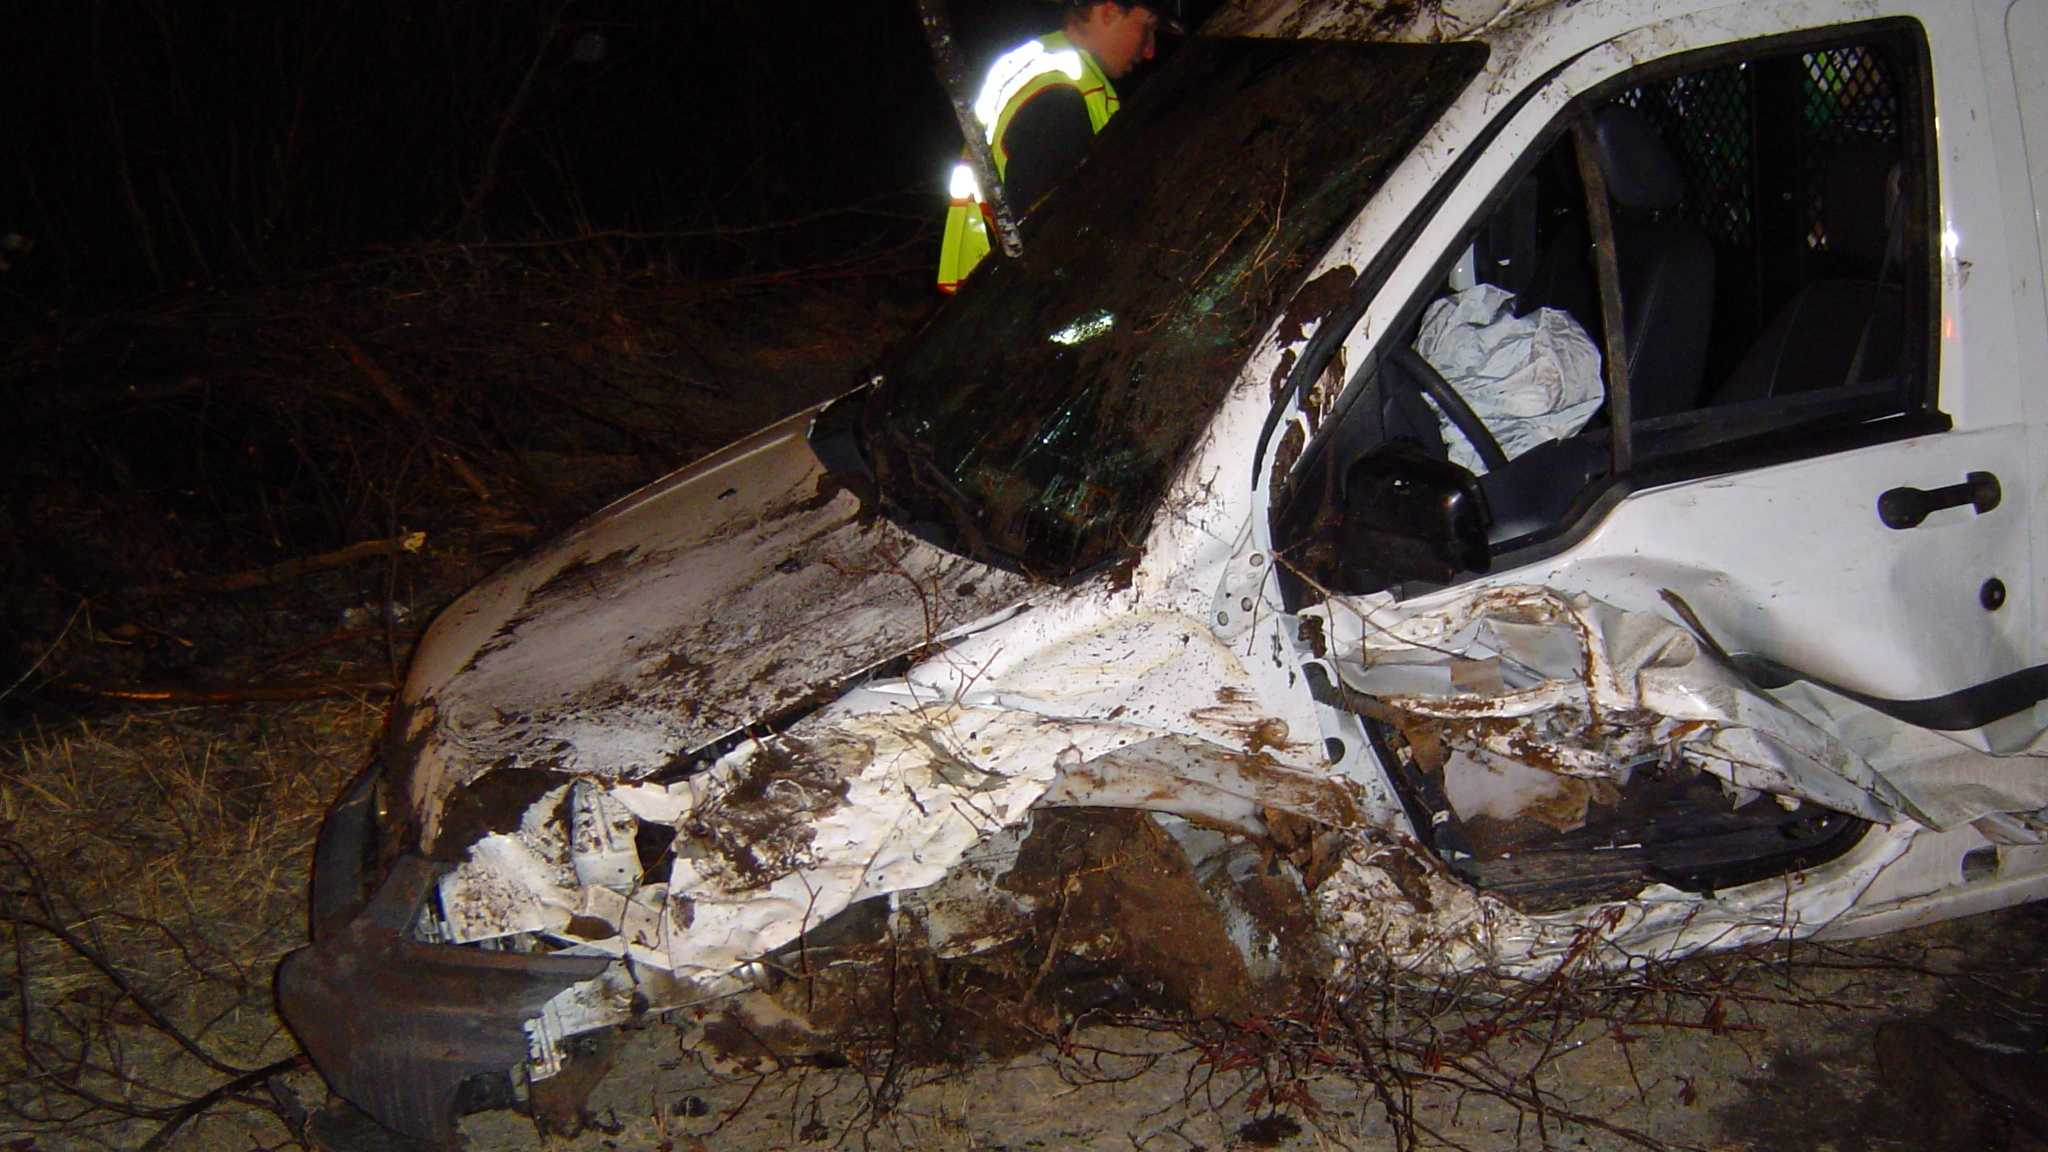 03-31-13 Car rolls over into woods - img